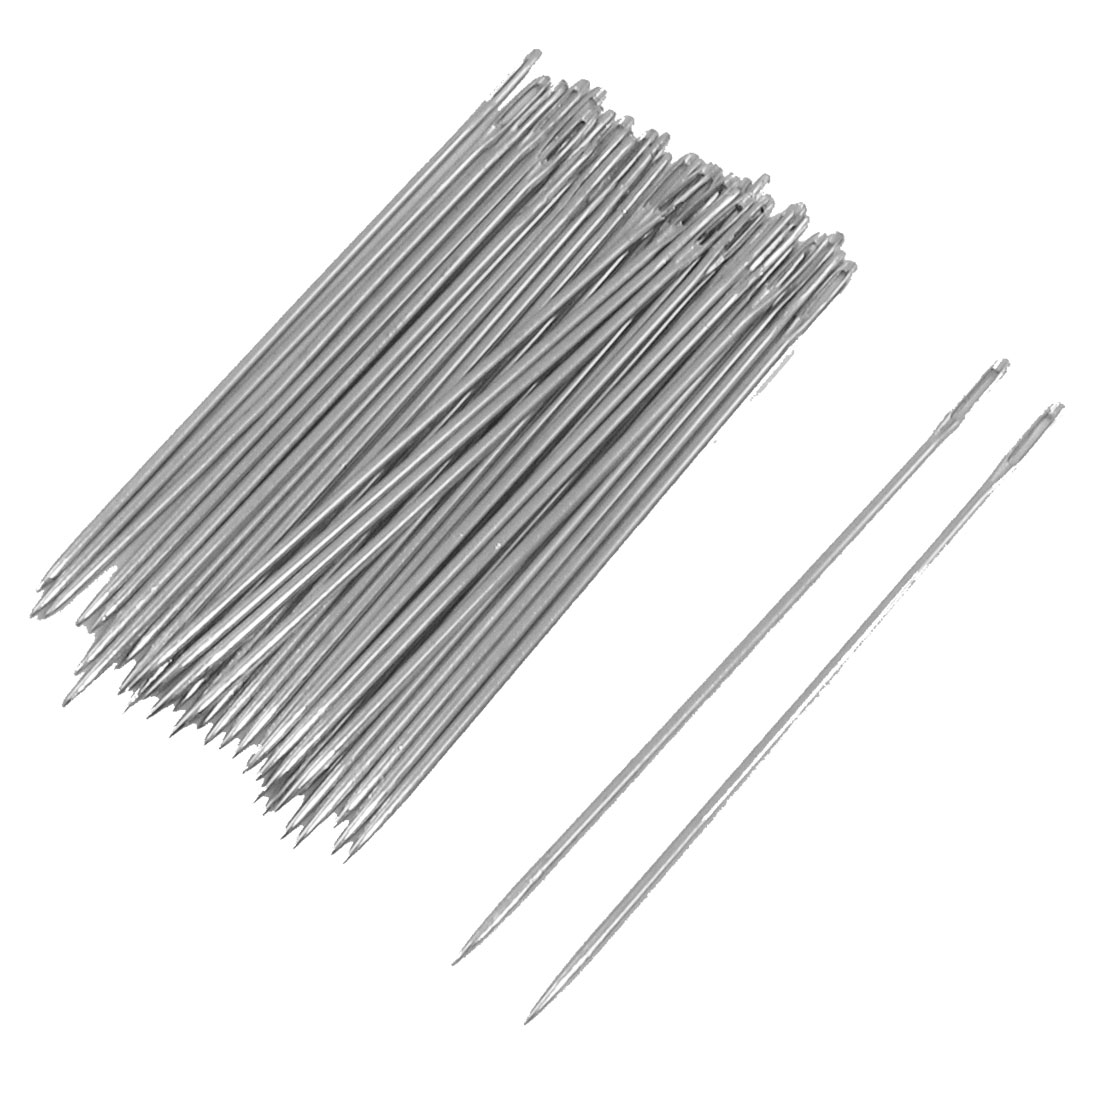 Home 40 Pcs 0.5mm Dia Sharp Tip Metal Sewing Needles